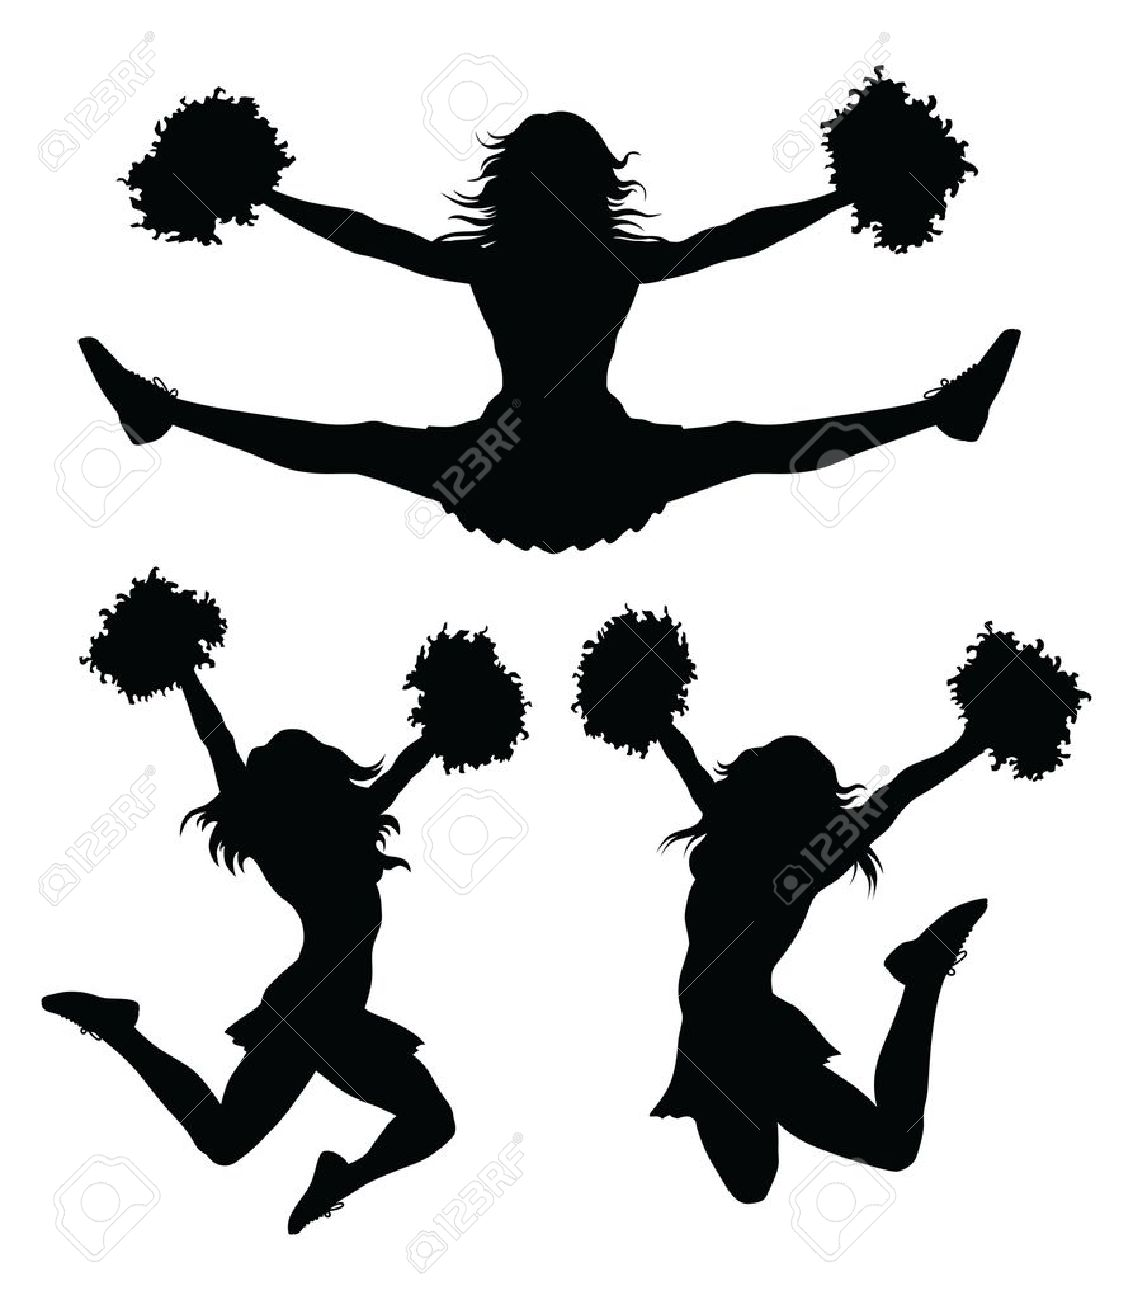 Cheerleader toe touch. Cliparts free download best